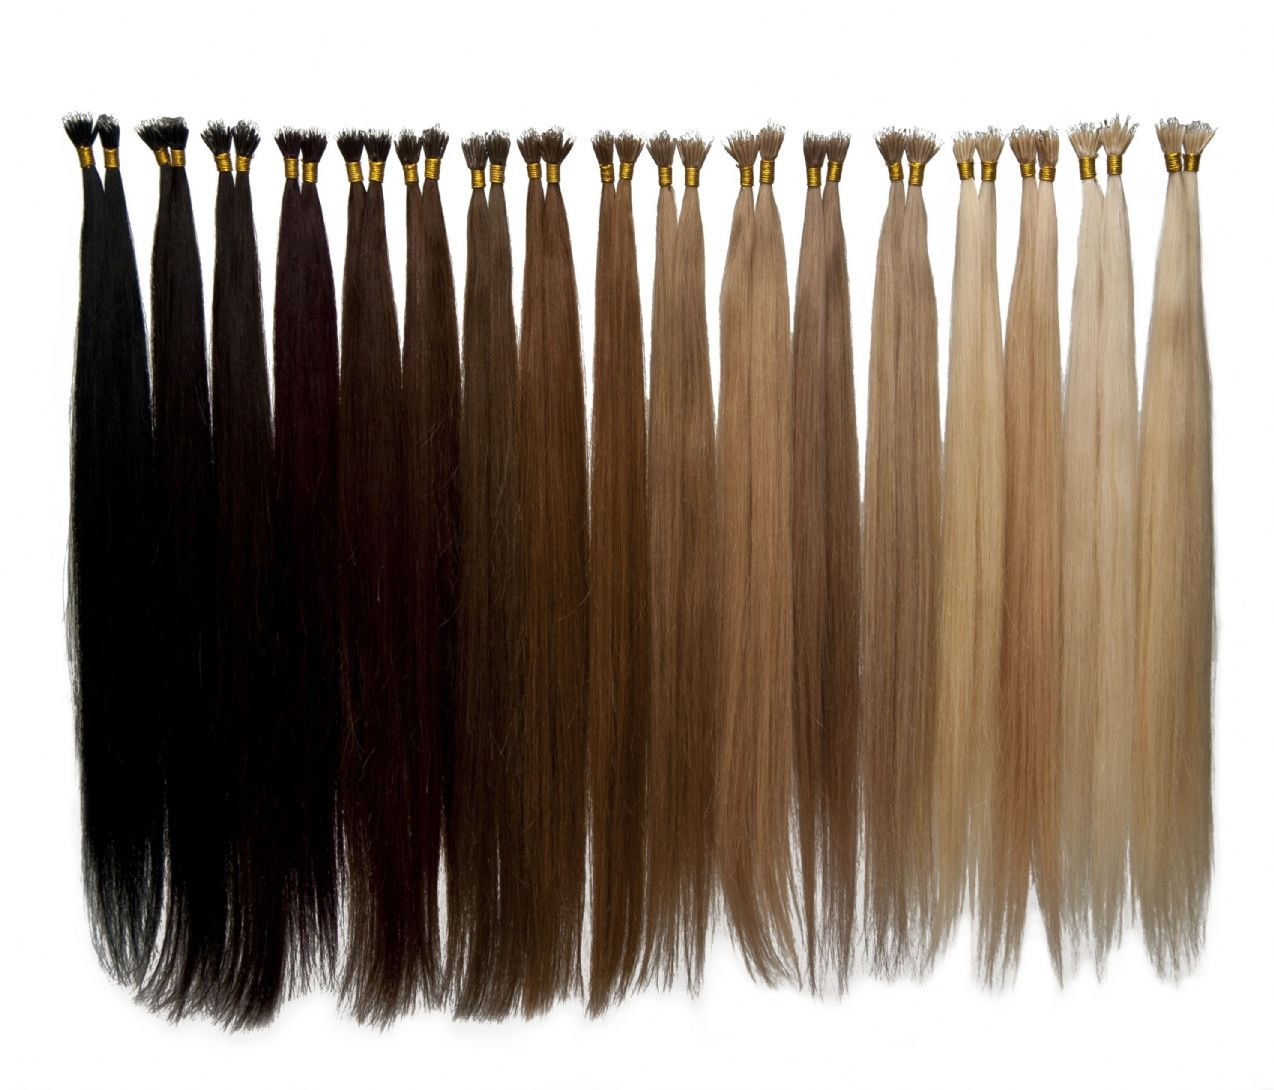 How much do hair extensions cost in india where to buy tipsoye how much do hair extensions cost in india where to buy pmusecretfo Gallery